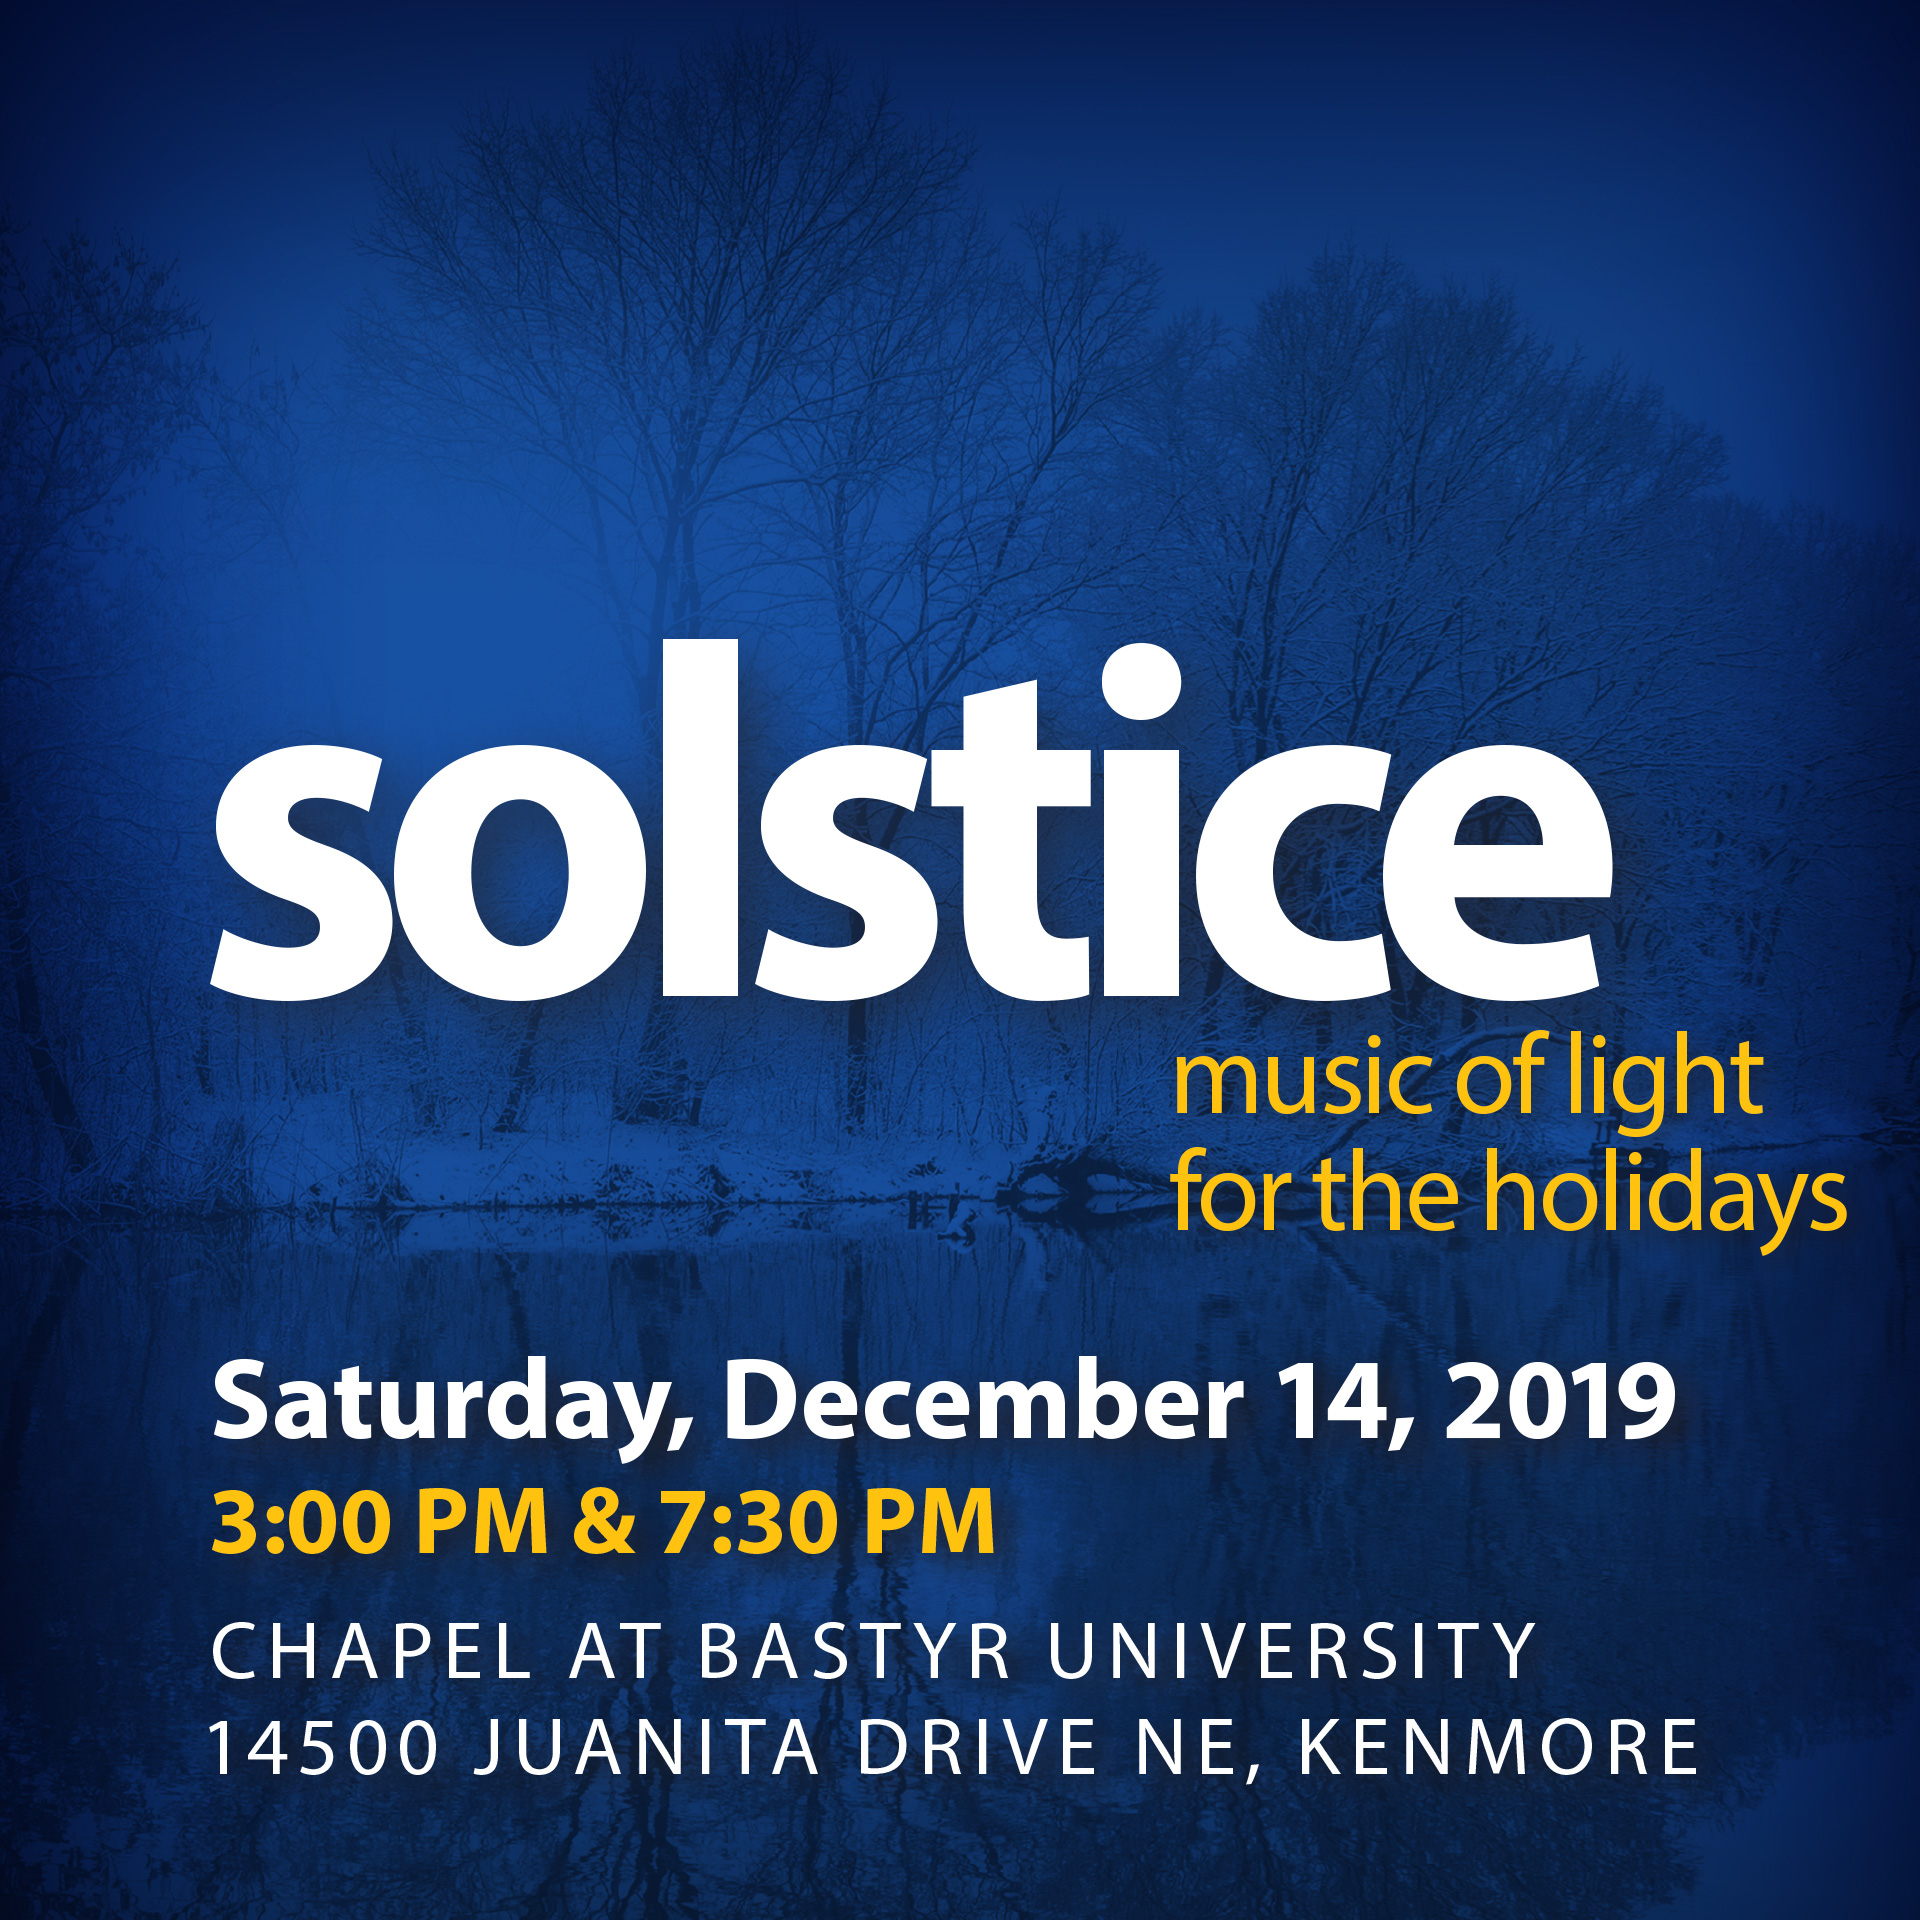 spm-2019-squarebox-solstice-dec-14.jpg